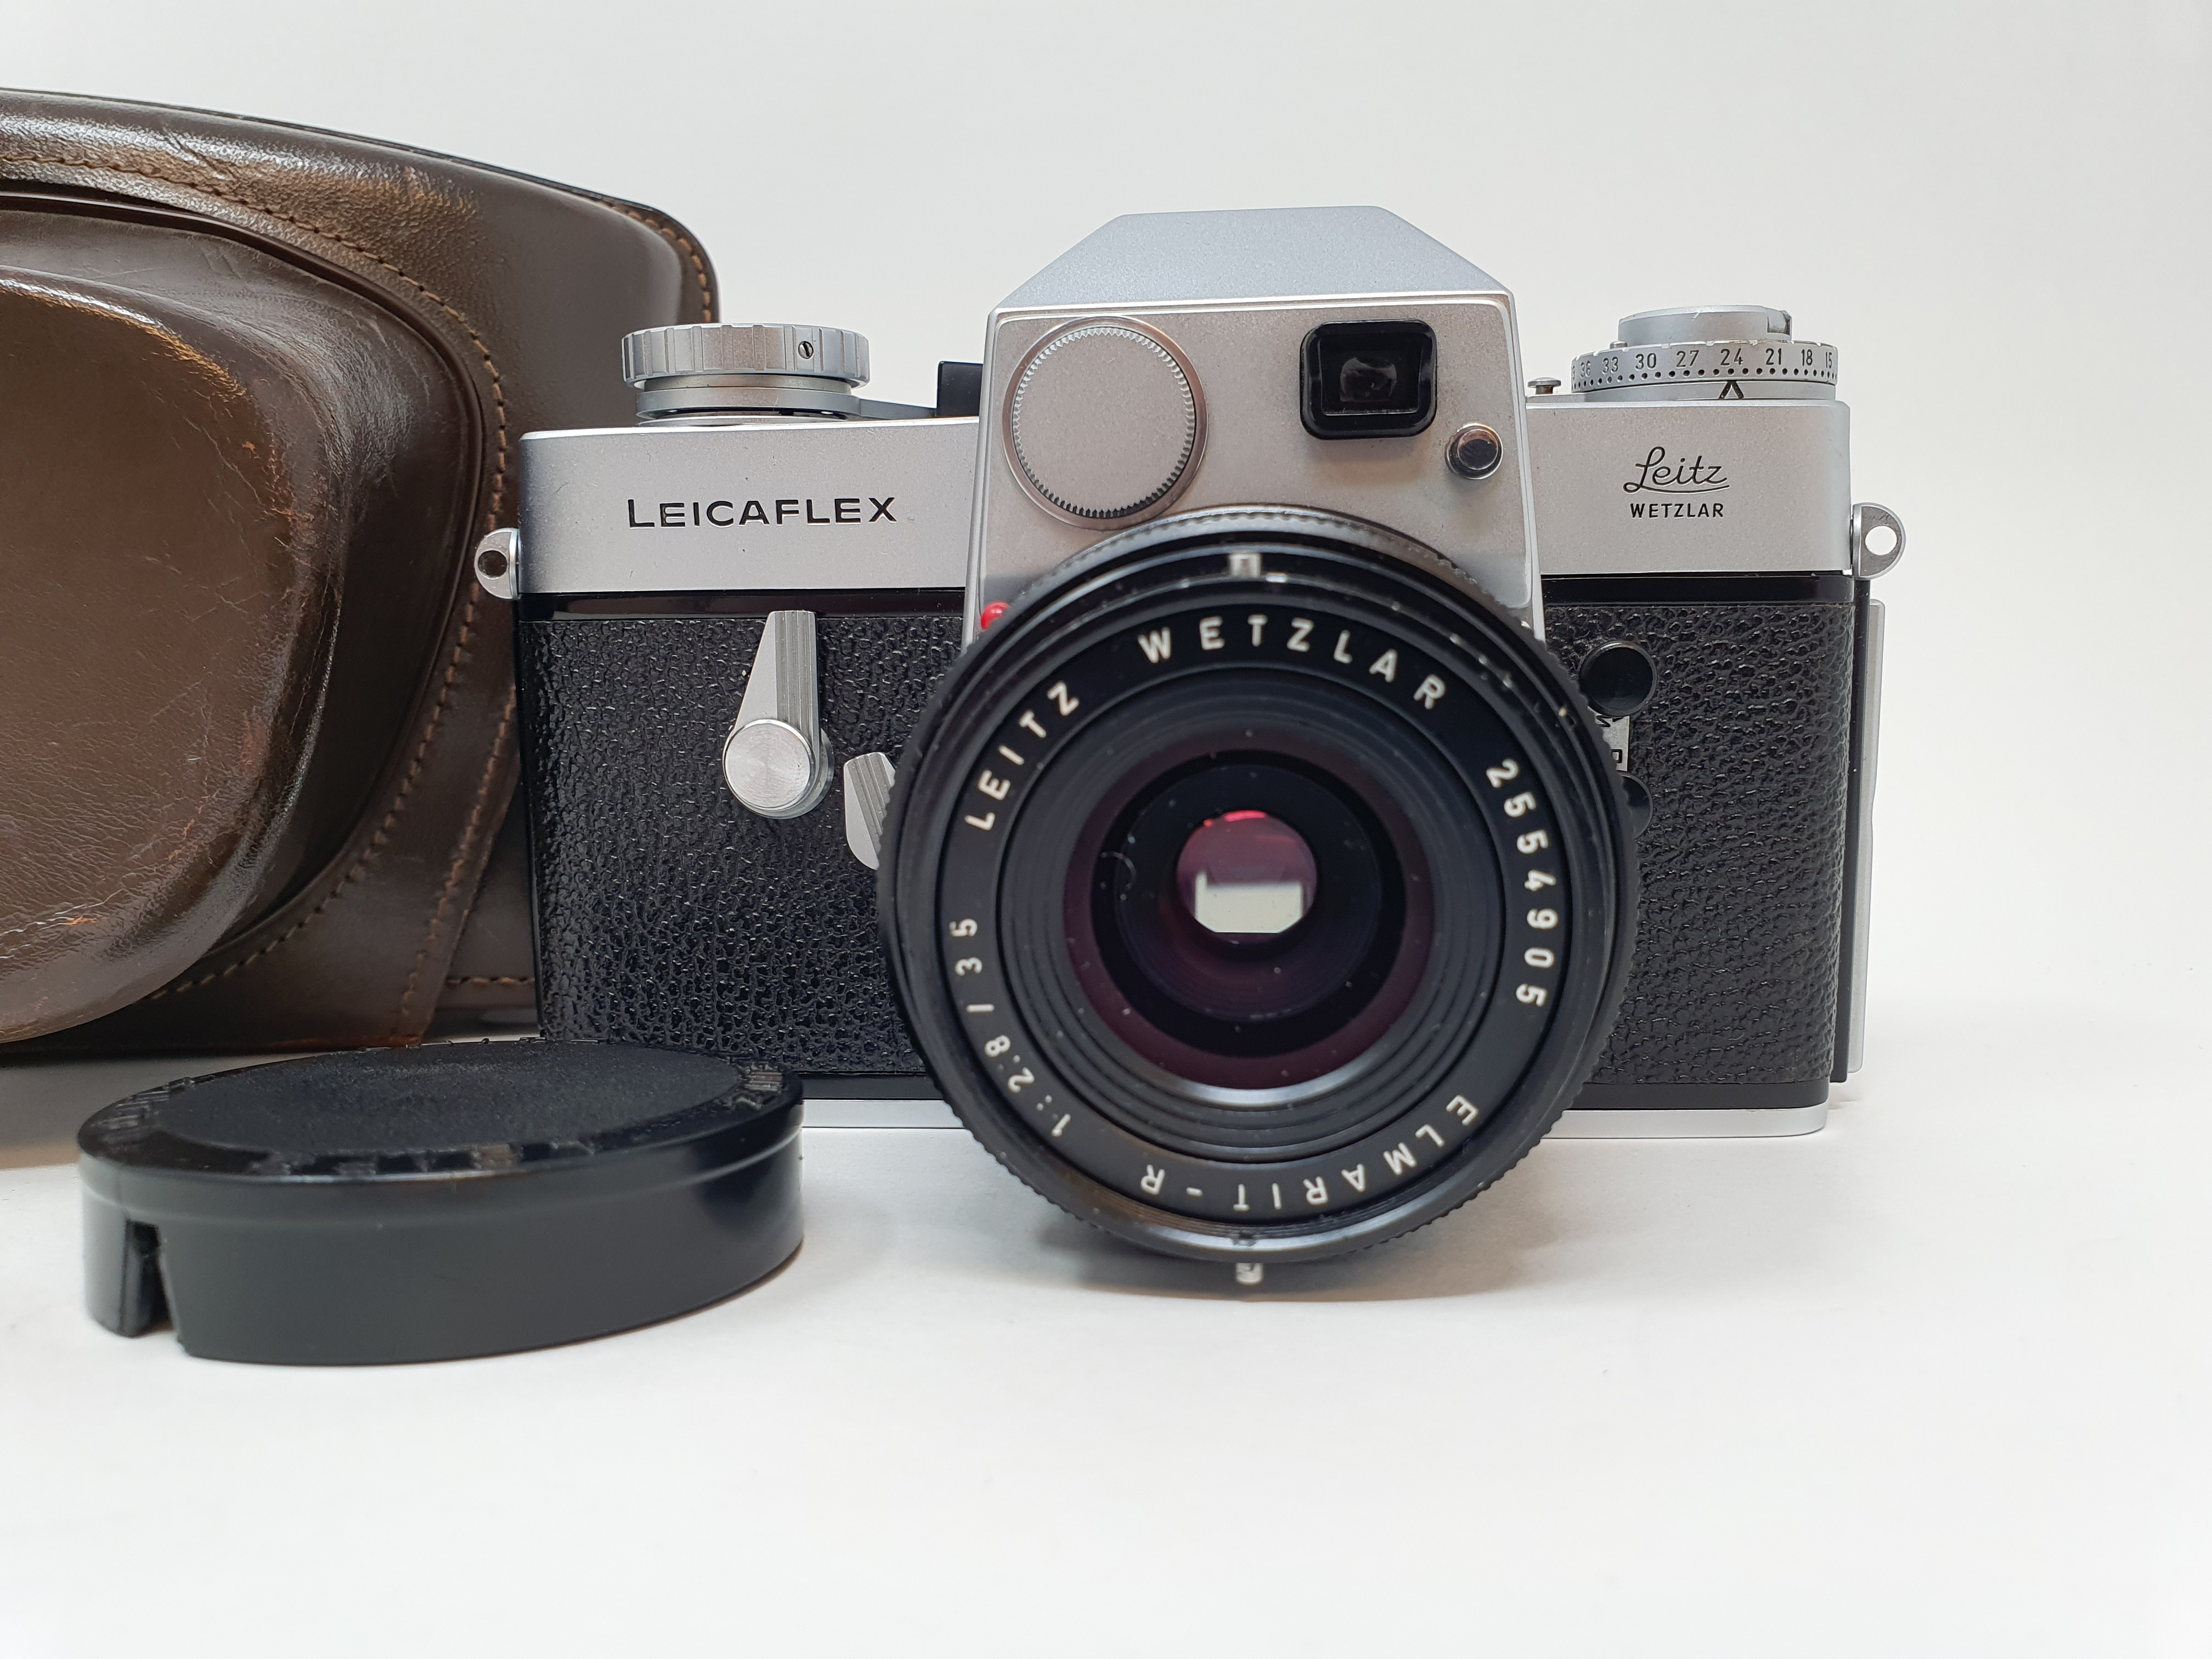 A Leica Leicaflex camera, serial number 1115659, with leather outer case Provenance: Part of a